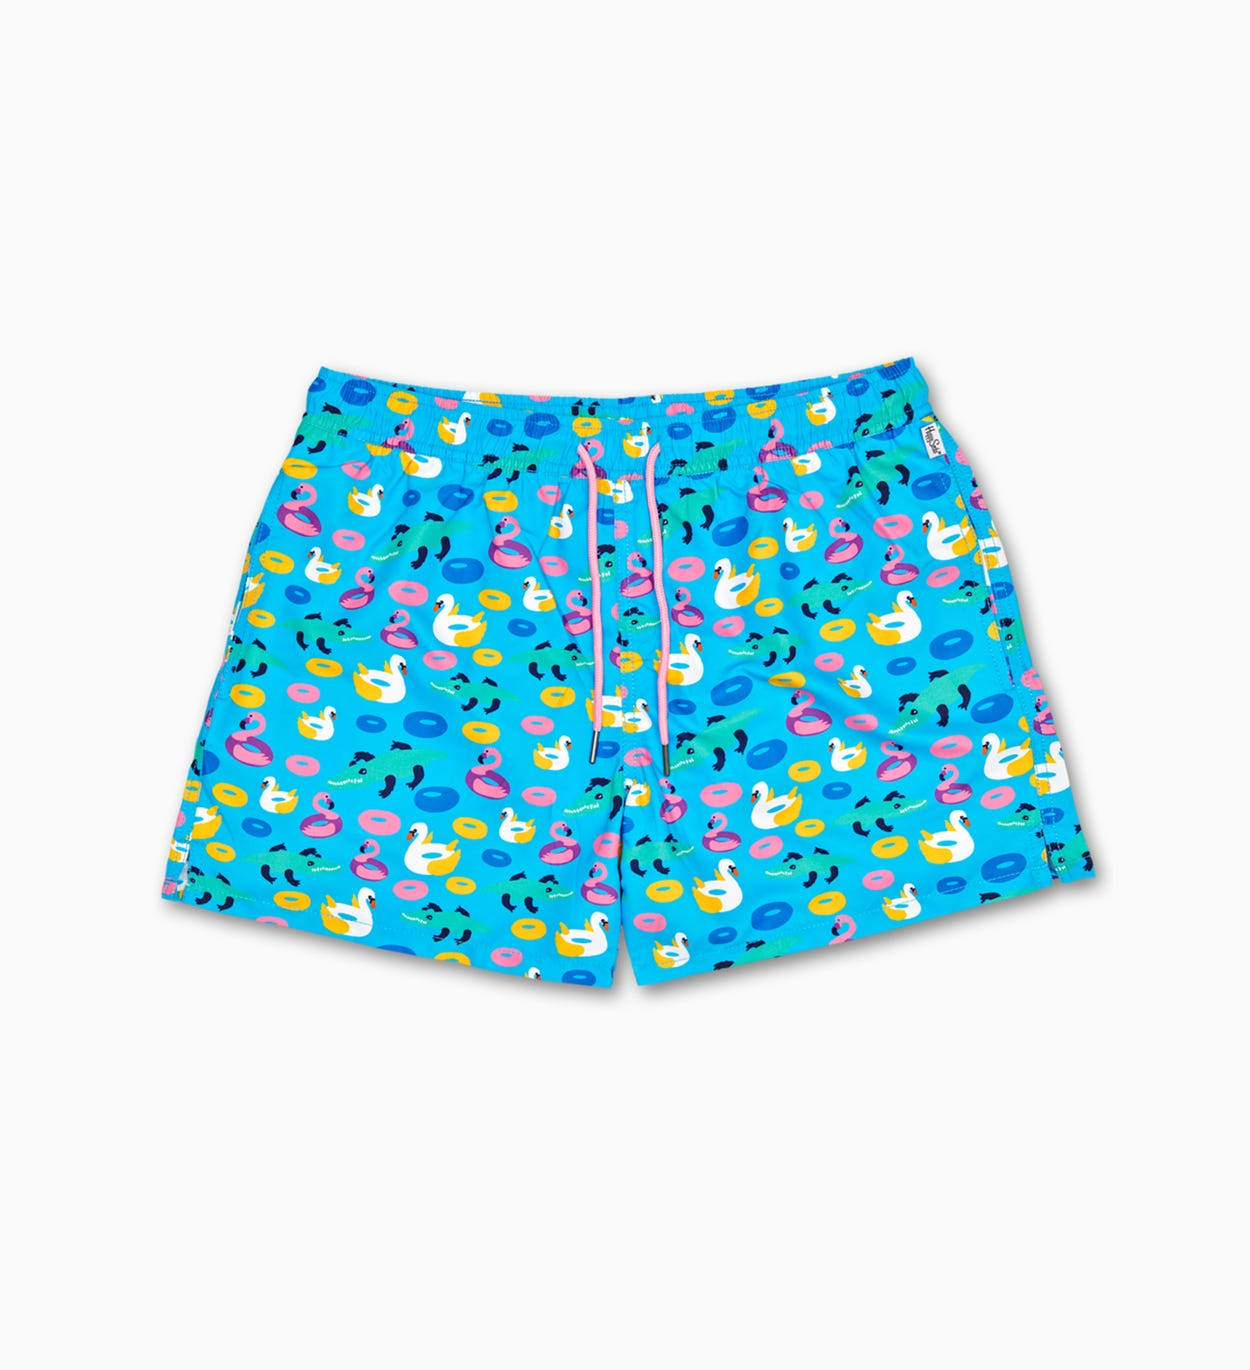 Herren Badeshorts: Pool PartyMuster | Happy Socks